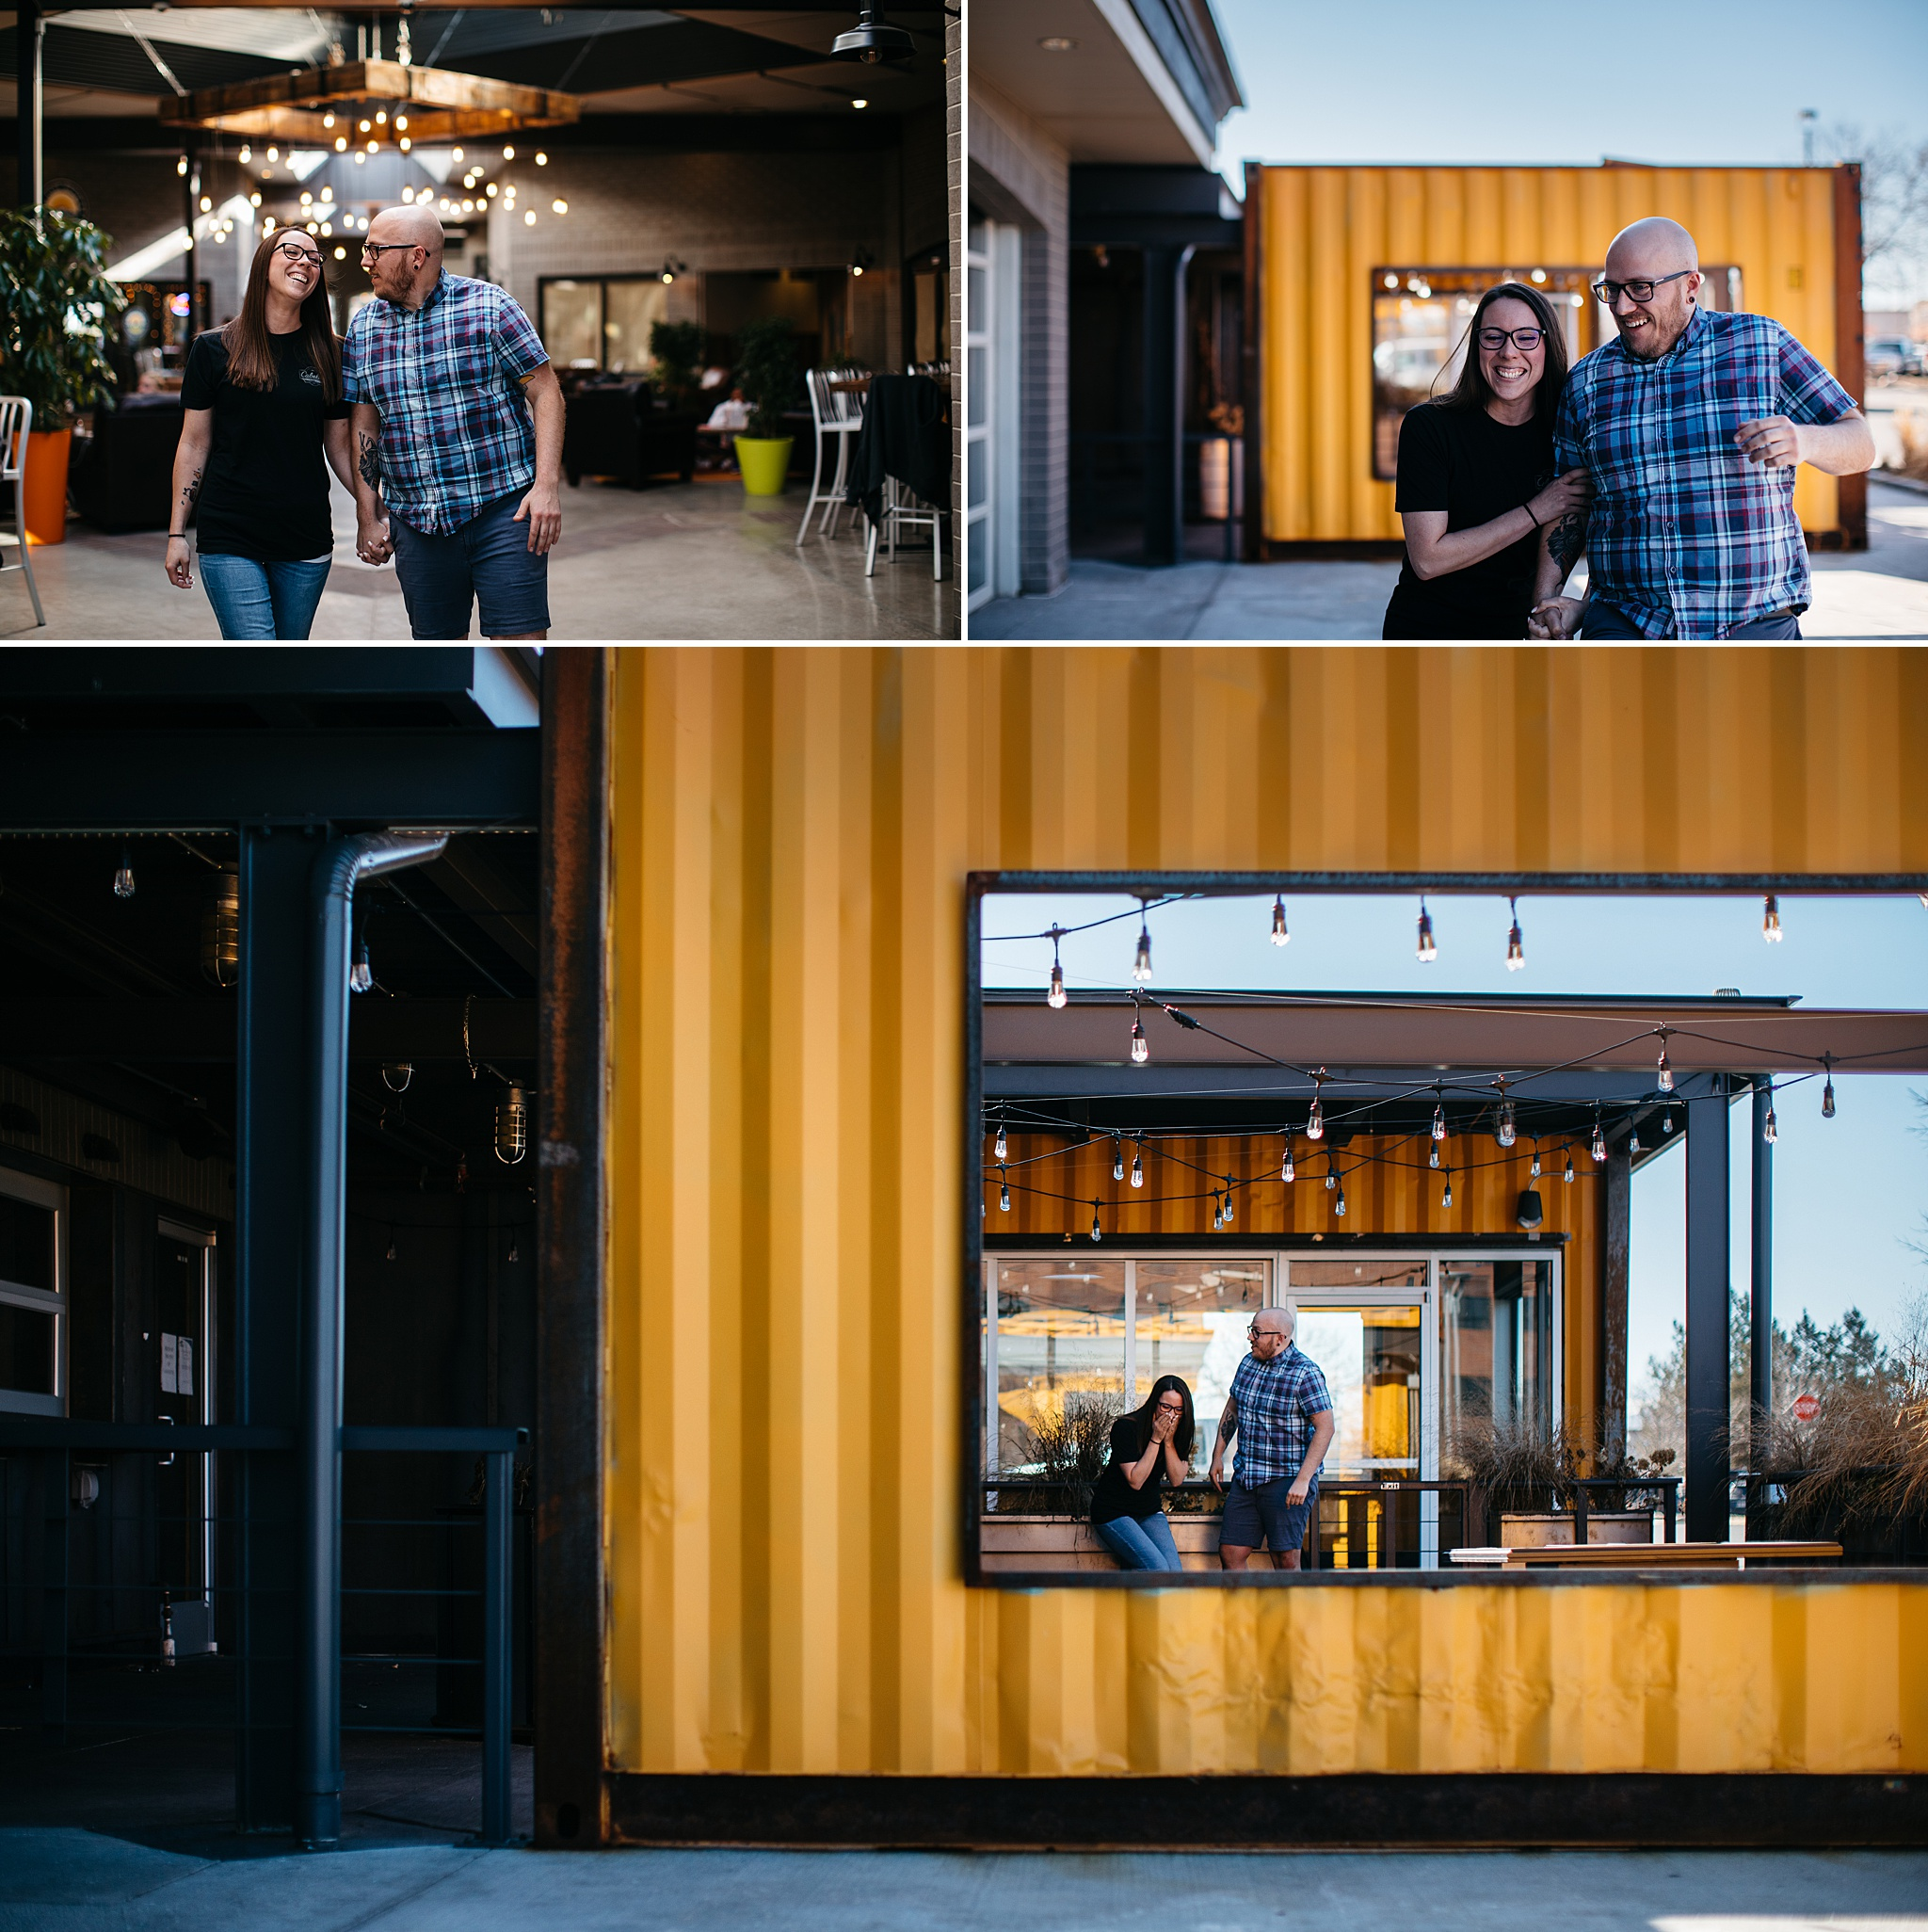 Denver Coffee Shop Engagement Session